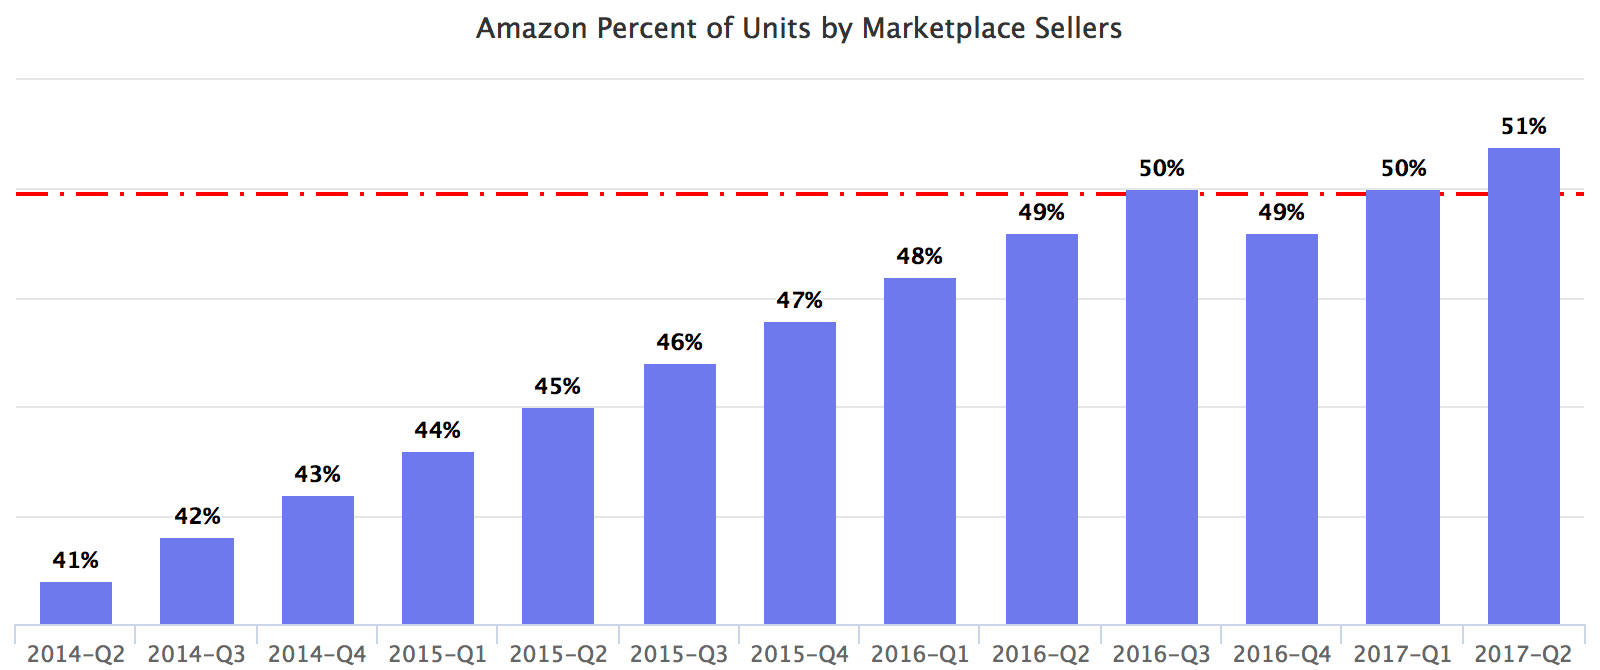 Amazon Percent of Units by Marketplace Sellers